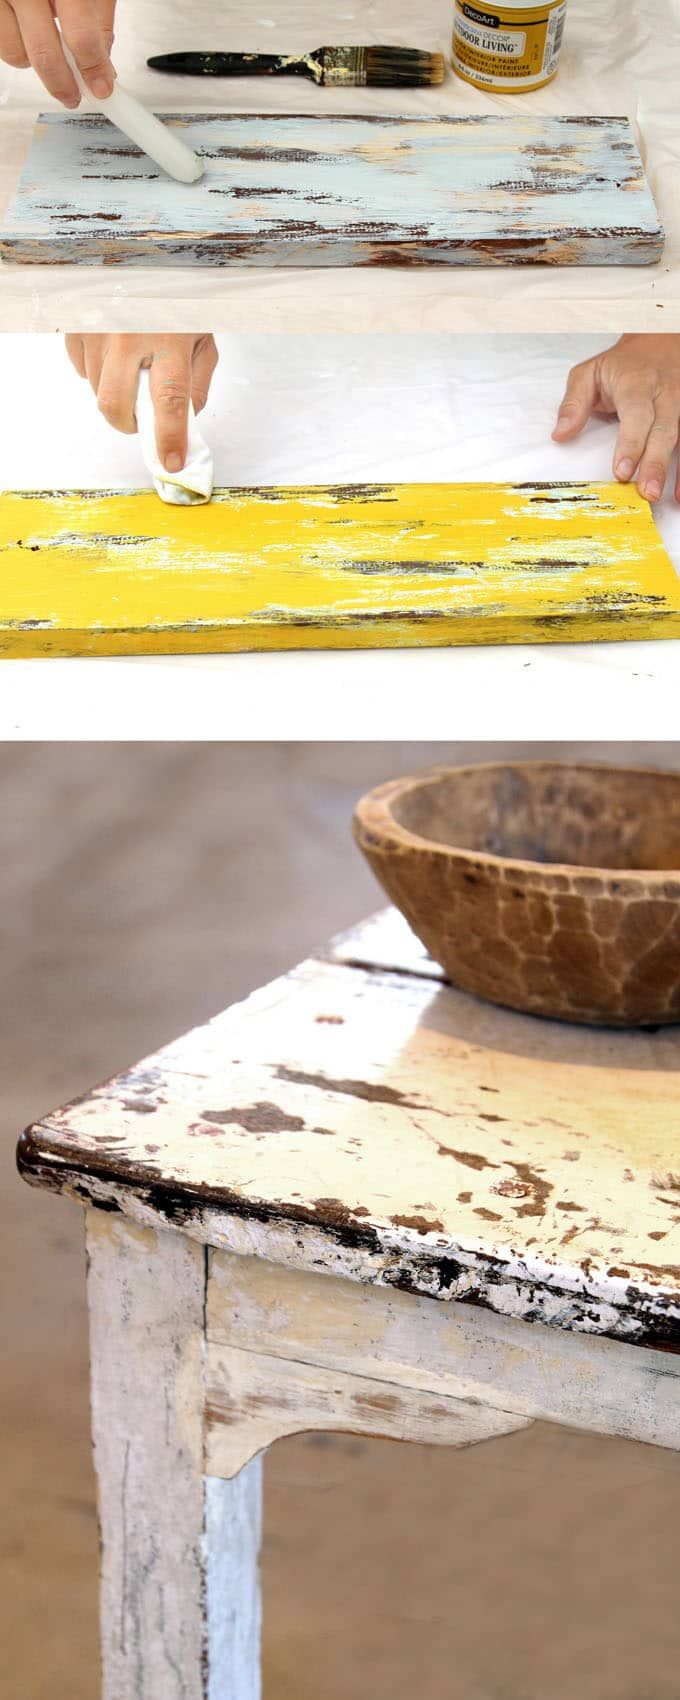 Ultimate guide on how to distress wood and furniture. Video tutorials of 7 easy painting techniques that give great results of aged look using simple tools.